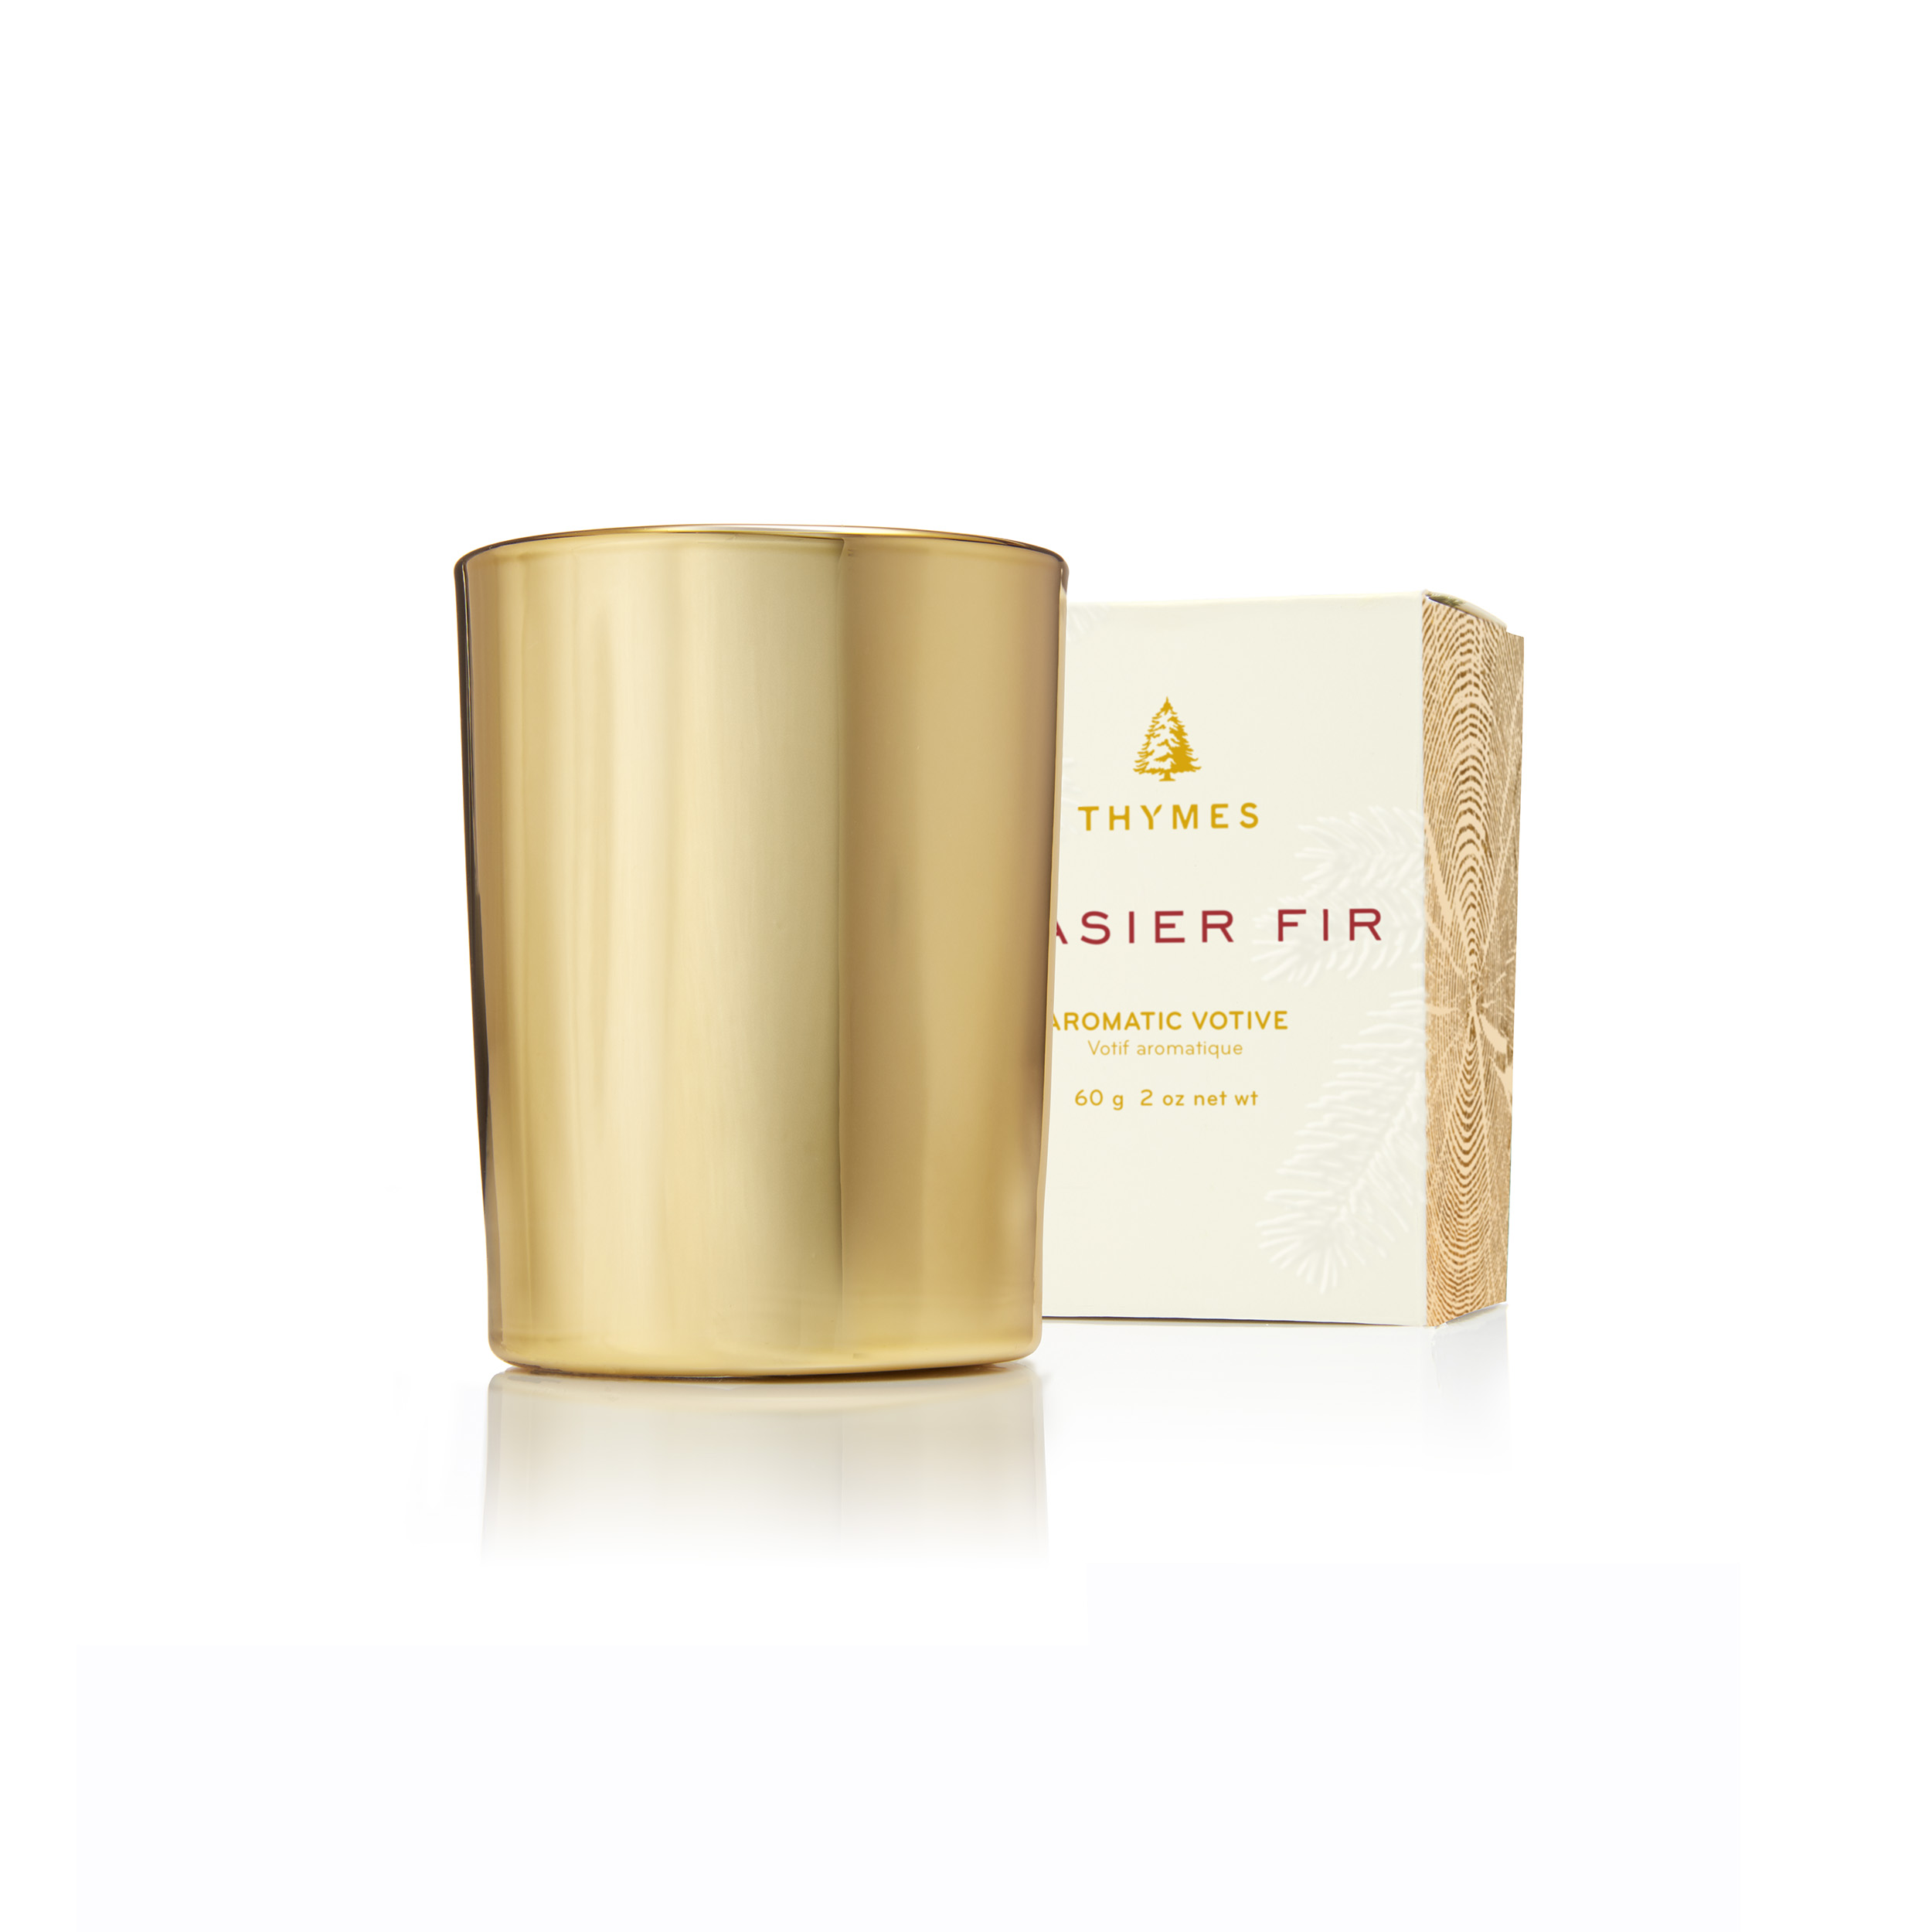 Lampe Berger New York Thymes Frasier Fir Gold Votive Candle Candles Off Main